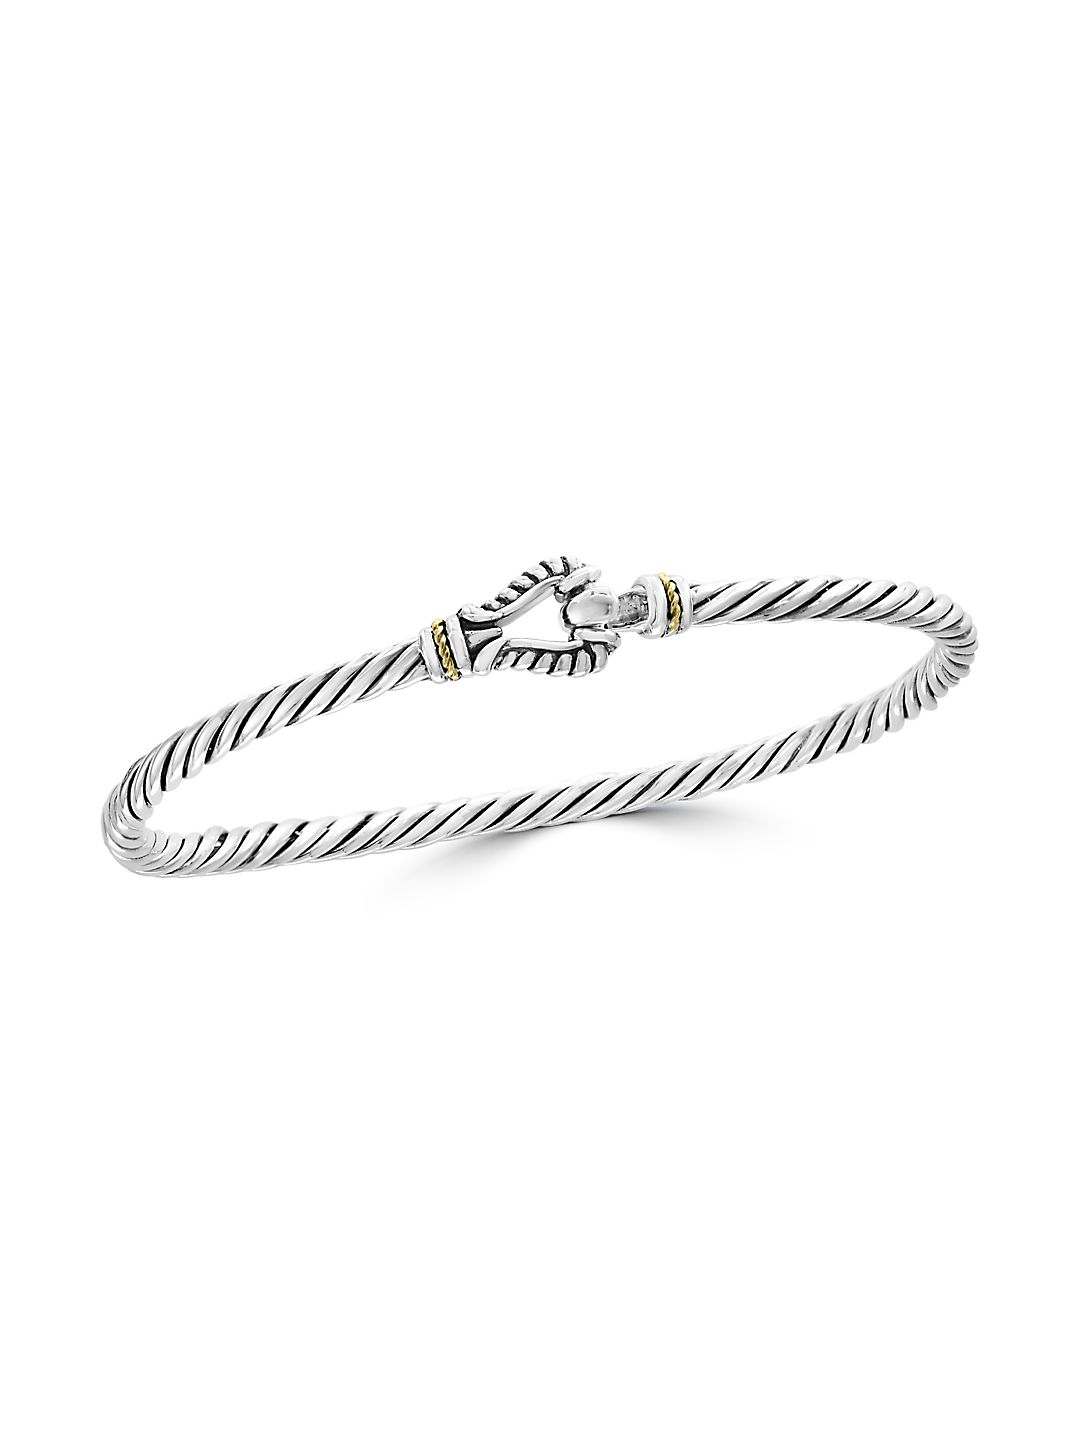 925 18K Yellow Gold and Sterling Silver Bangle Bracelet